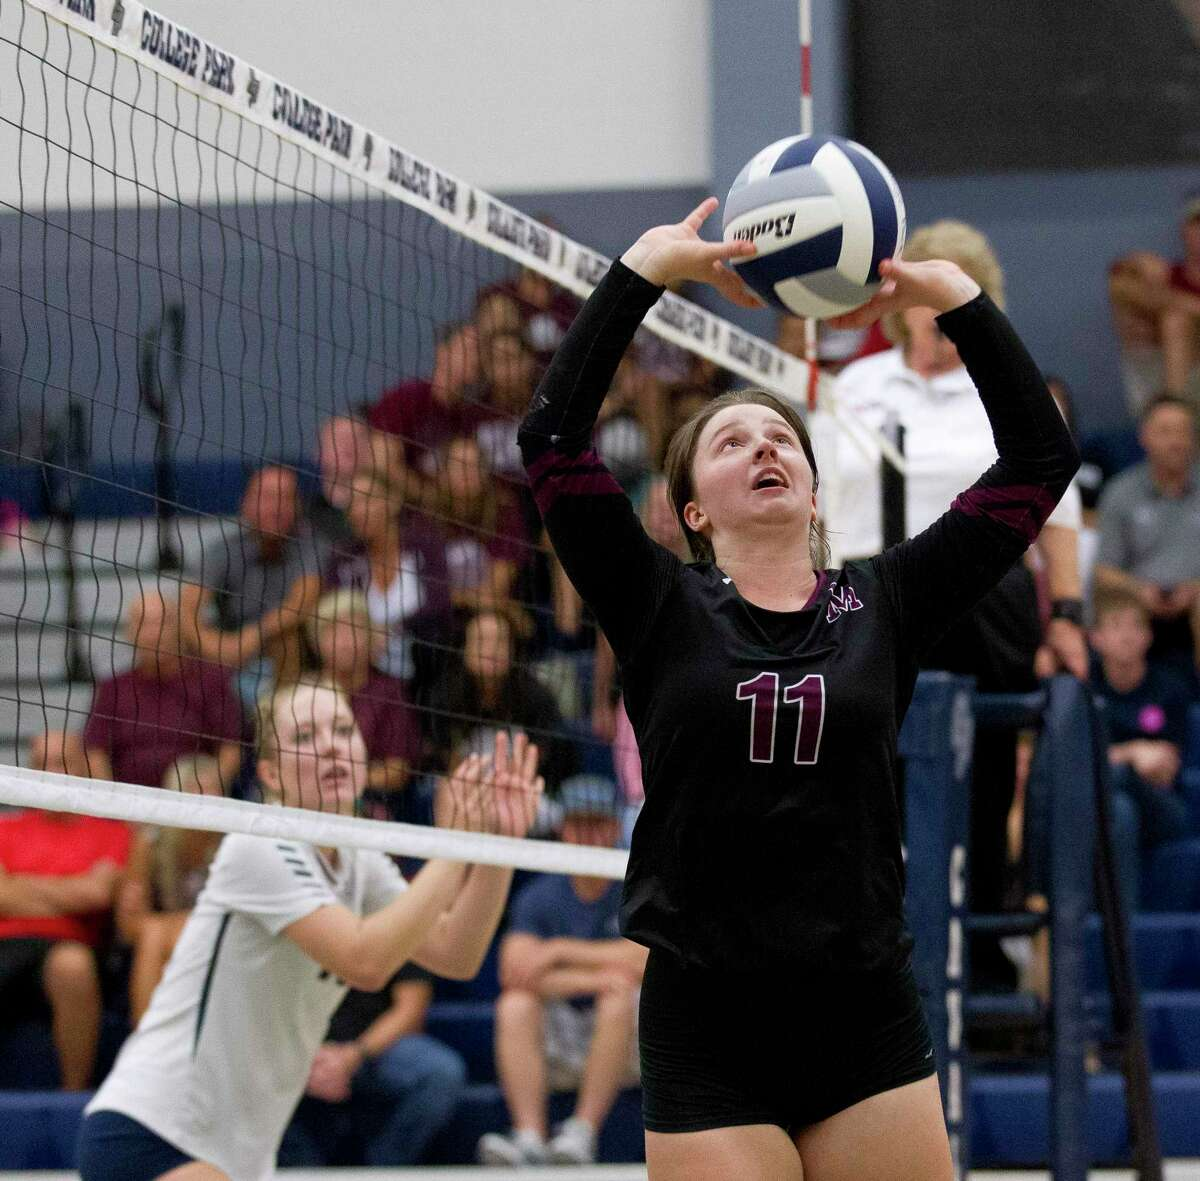 Magnolia's Faith Lynch (11) sets the ball during the second set of a non-district high school volleyball match at College Park High School on Saturday, Aug. 25, 2018, in The Woodlands